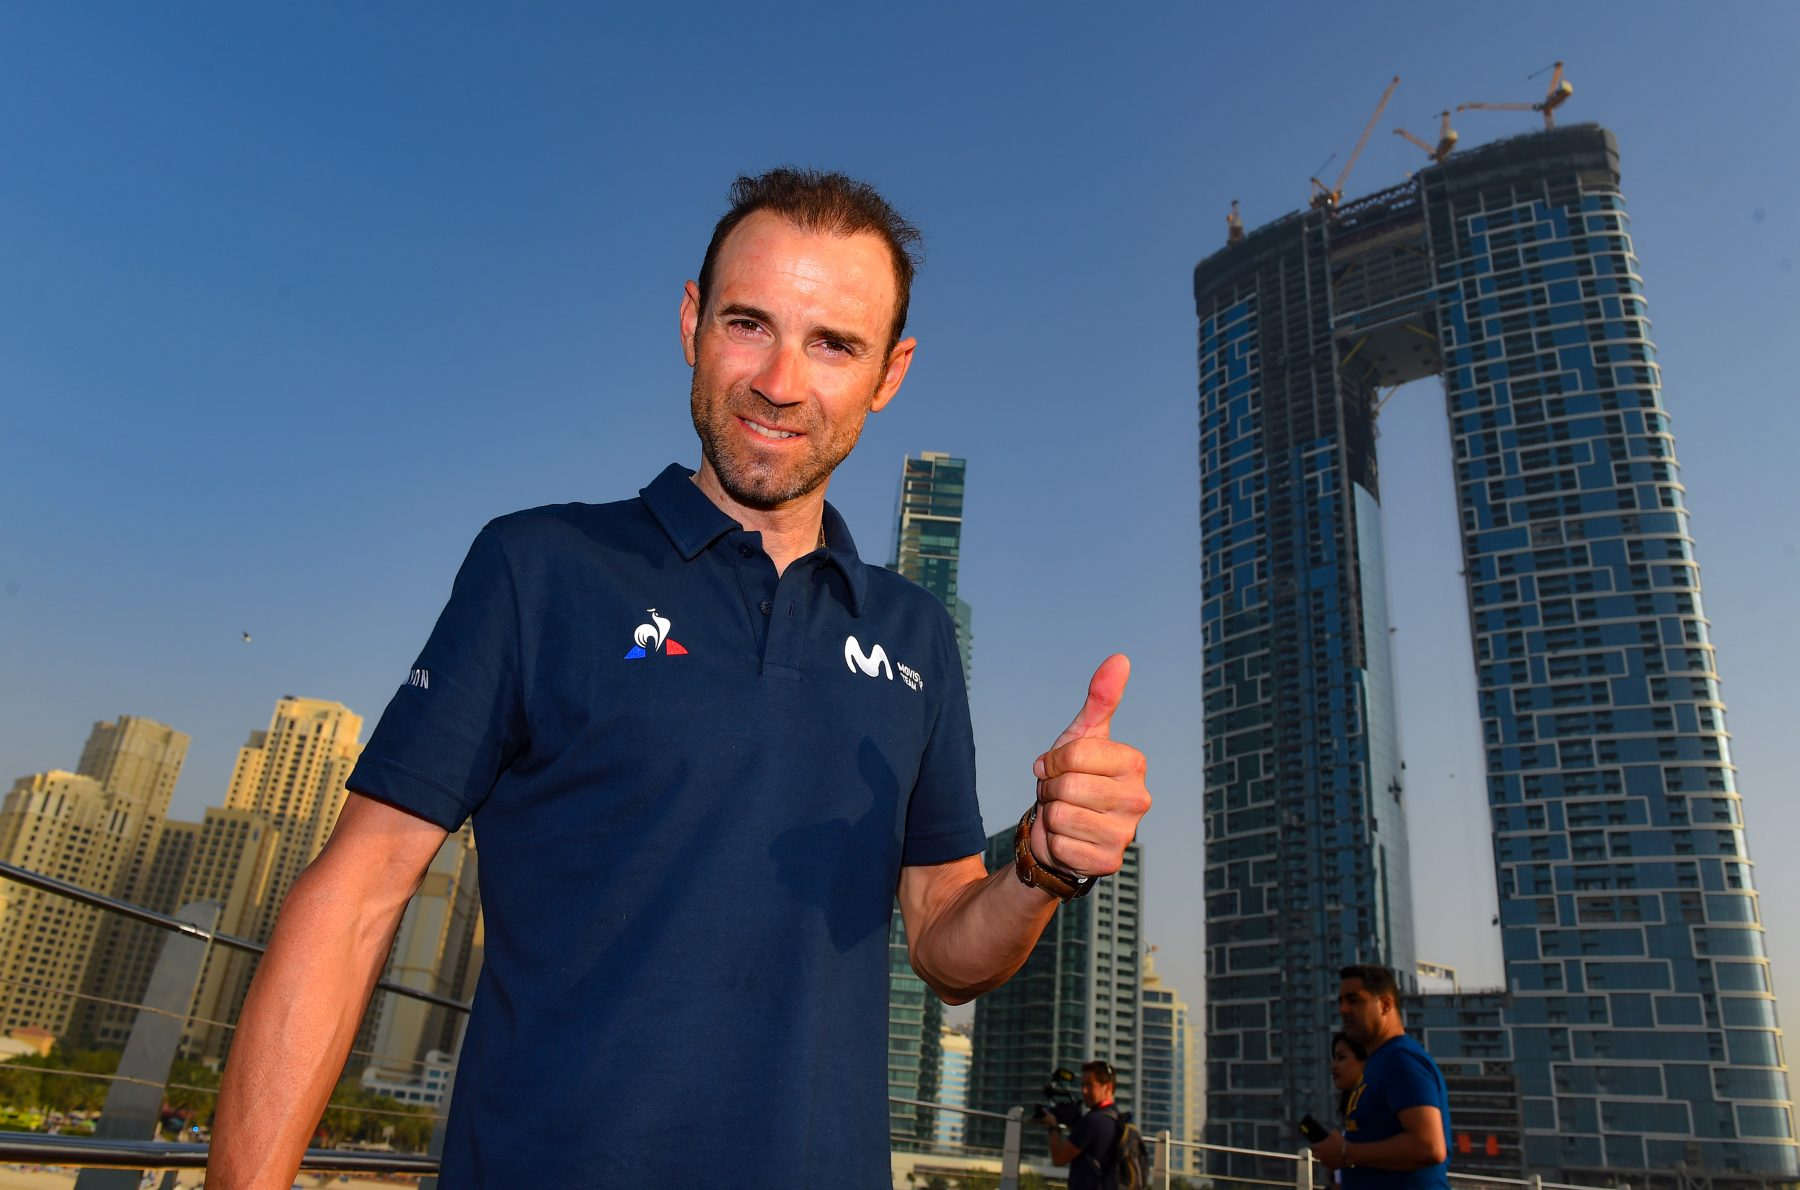 News' image'Valverde y Movistar Team, listos para el UAE Tour que arranca este domingo'